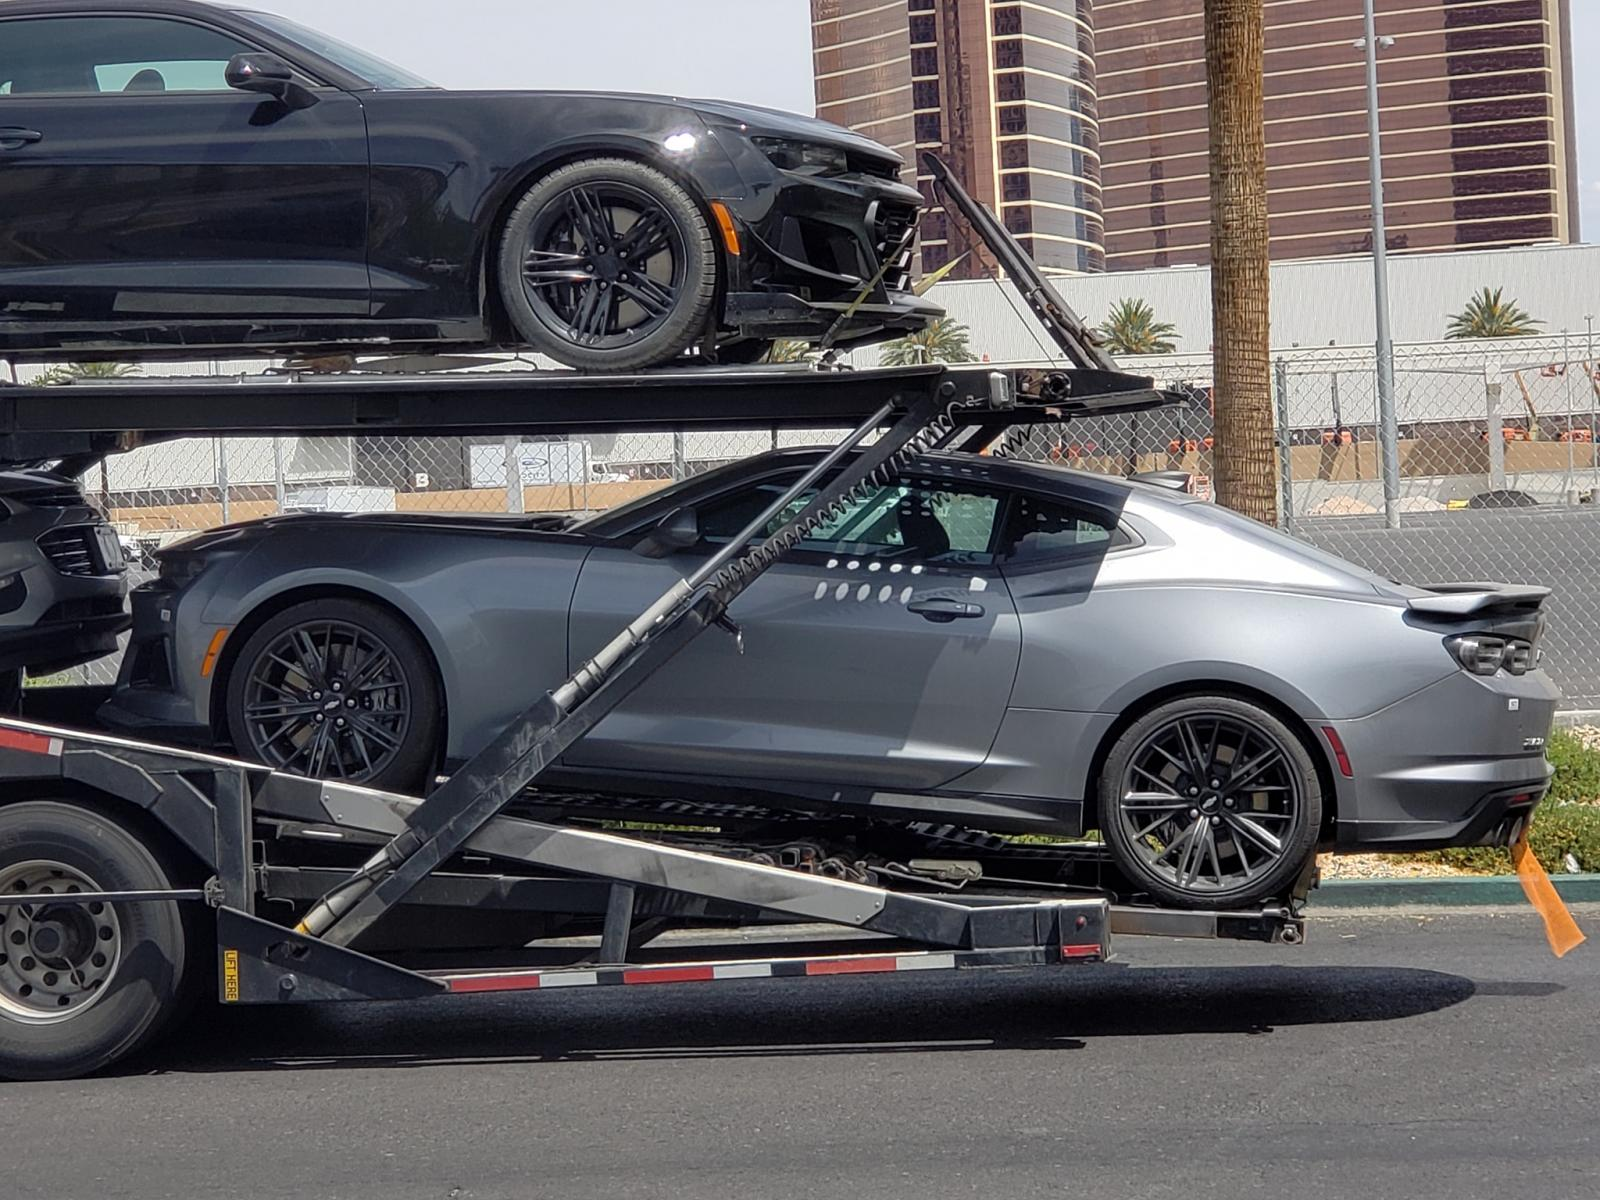 2019 Chevrolet Camaro Zl1 Spotted In Las Vegas 187 Autoguide Com News